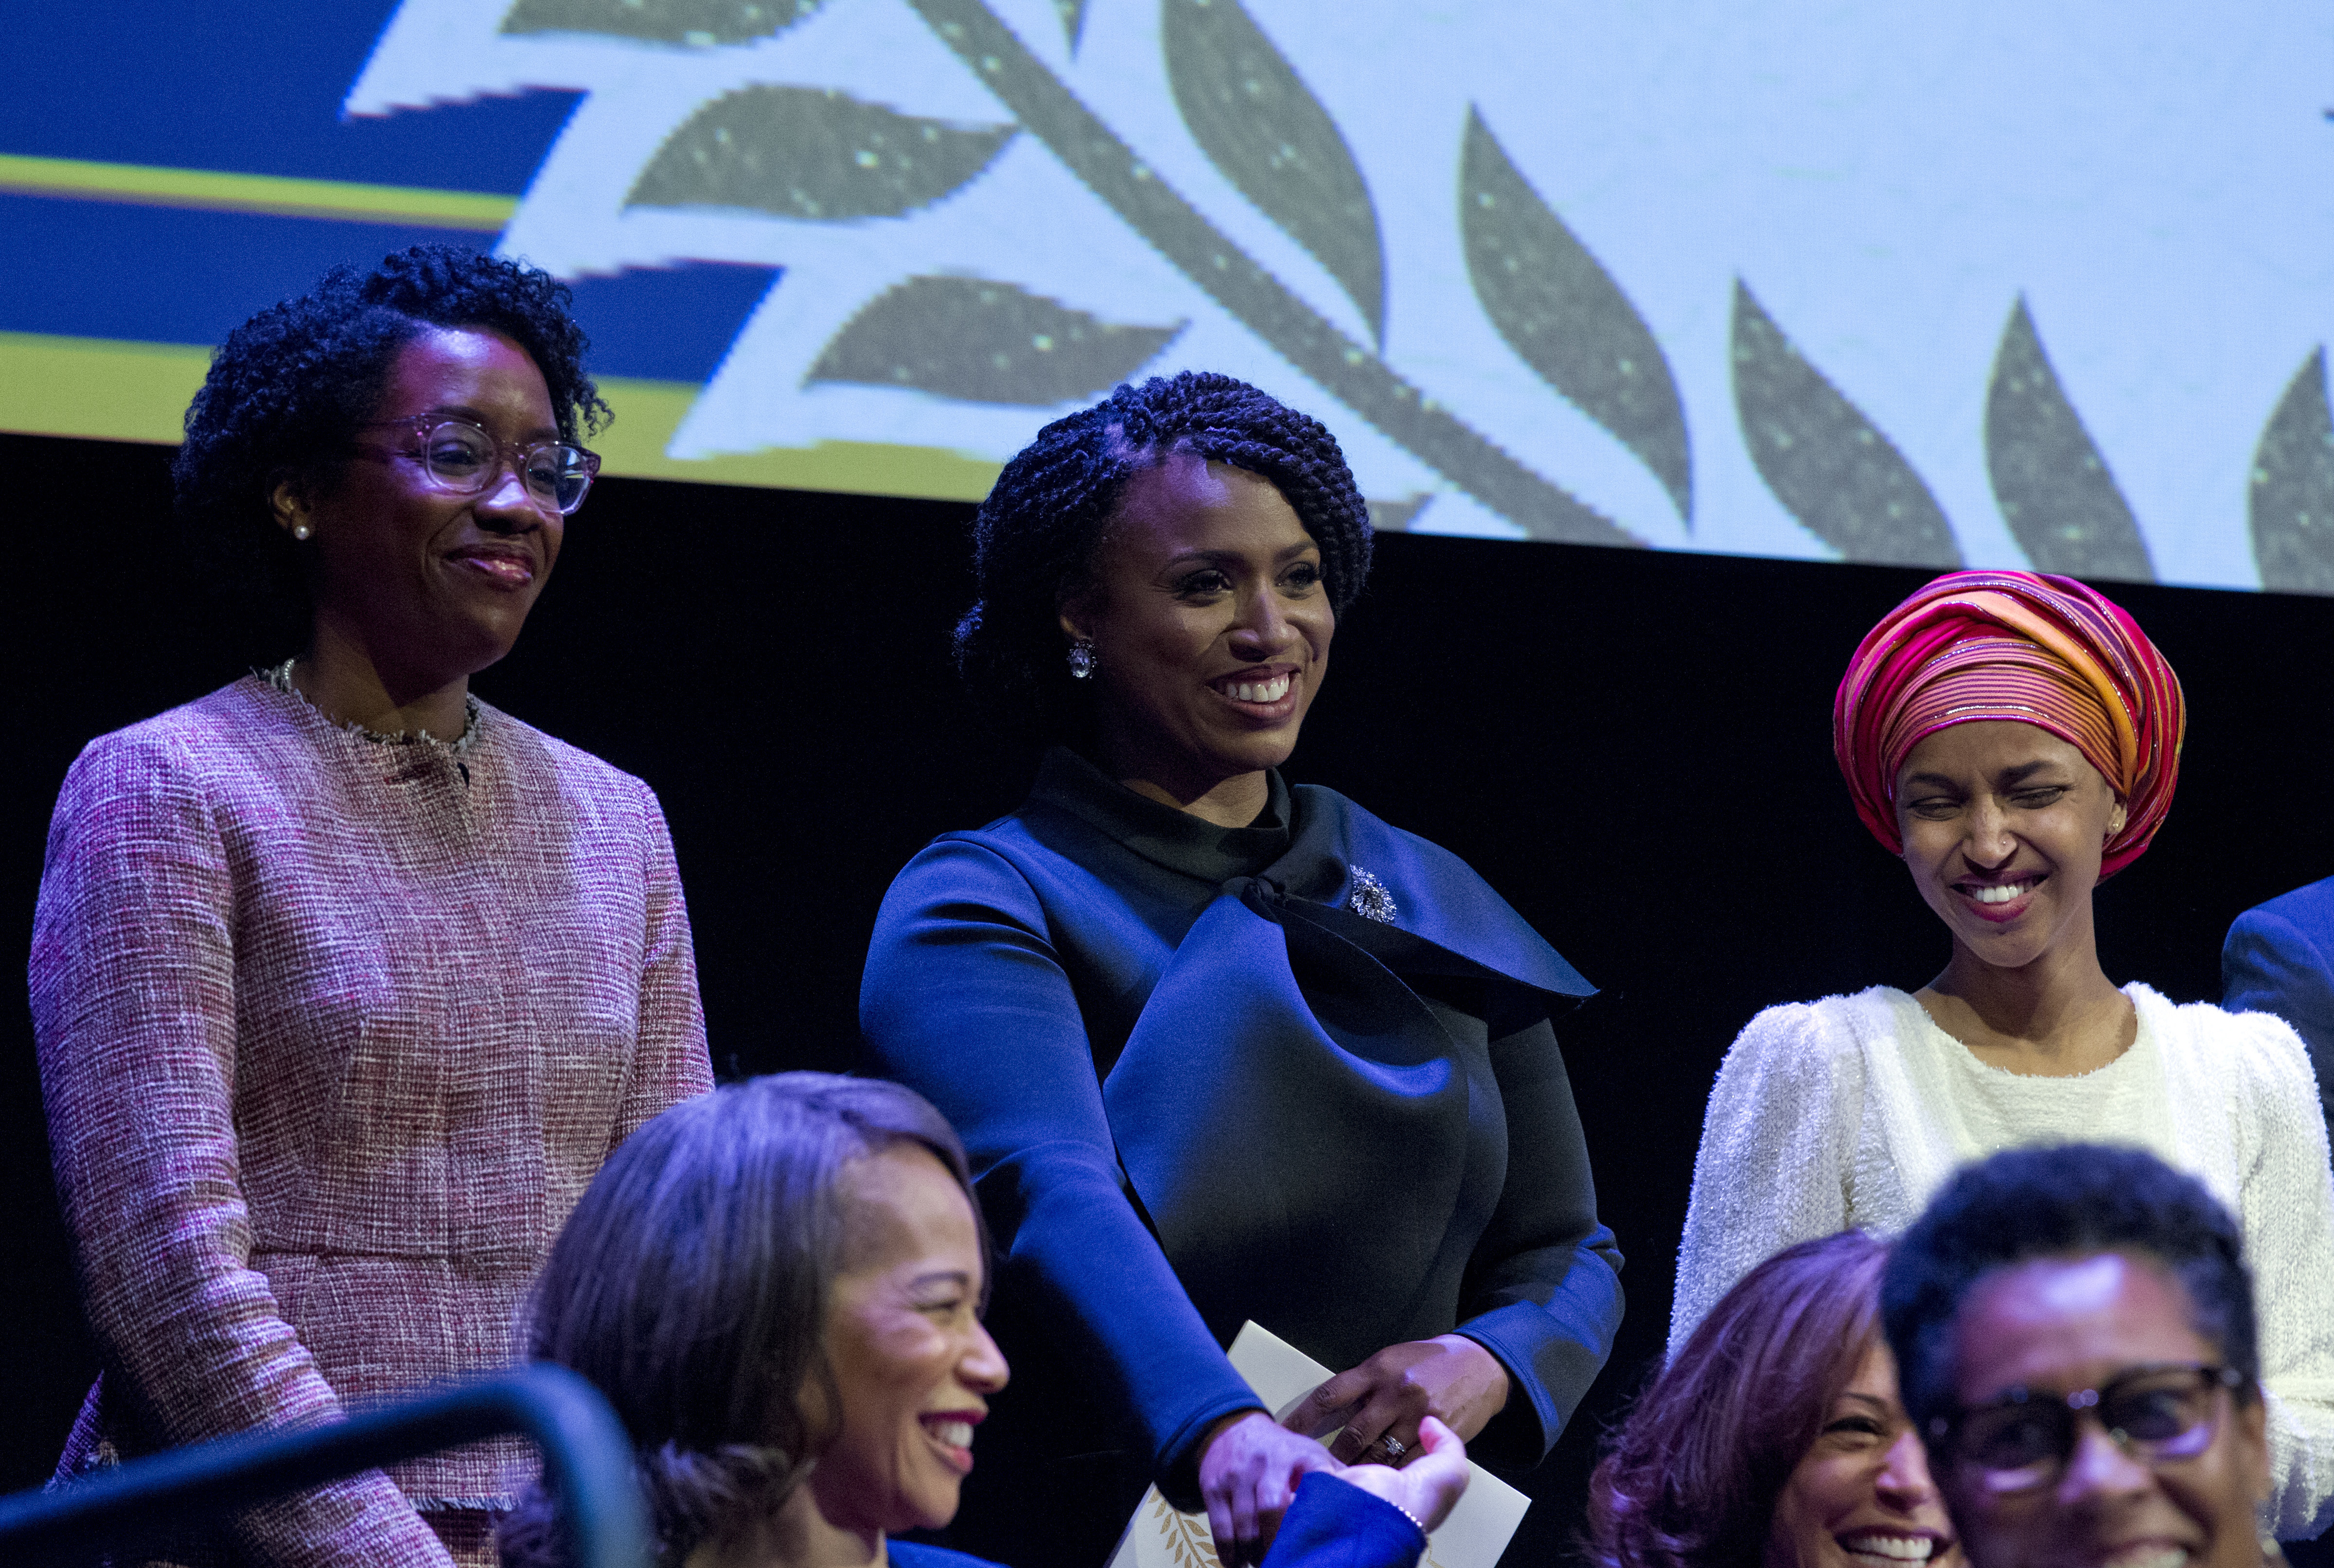 FILE - From left, Lauren Underwood, D-Ill., Ayanna Pressley, D-Mass., and Ilhan Omar D-Minn., are pictured during the swearing-in ceremony of Congressional Black Caucus members of the 116th Congress at the Warner Theatre in Washington, Jan. 3, 2019. ...